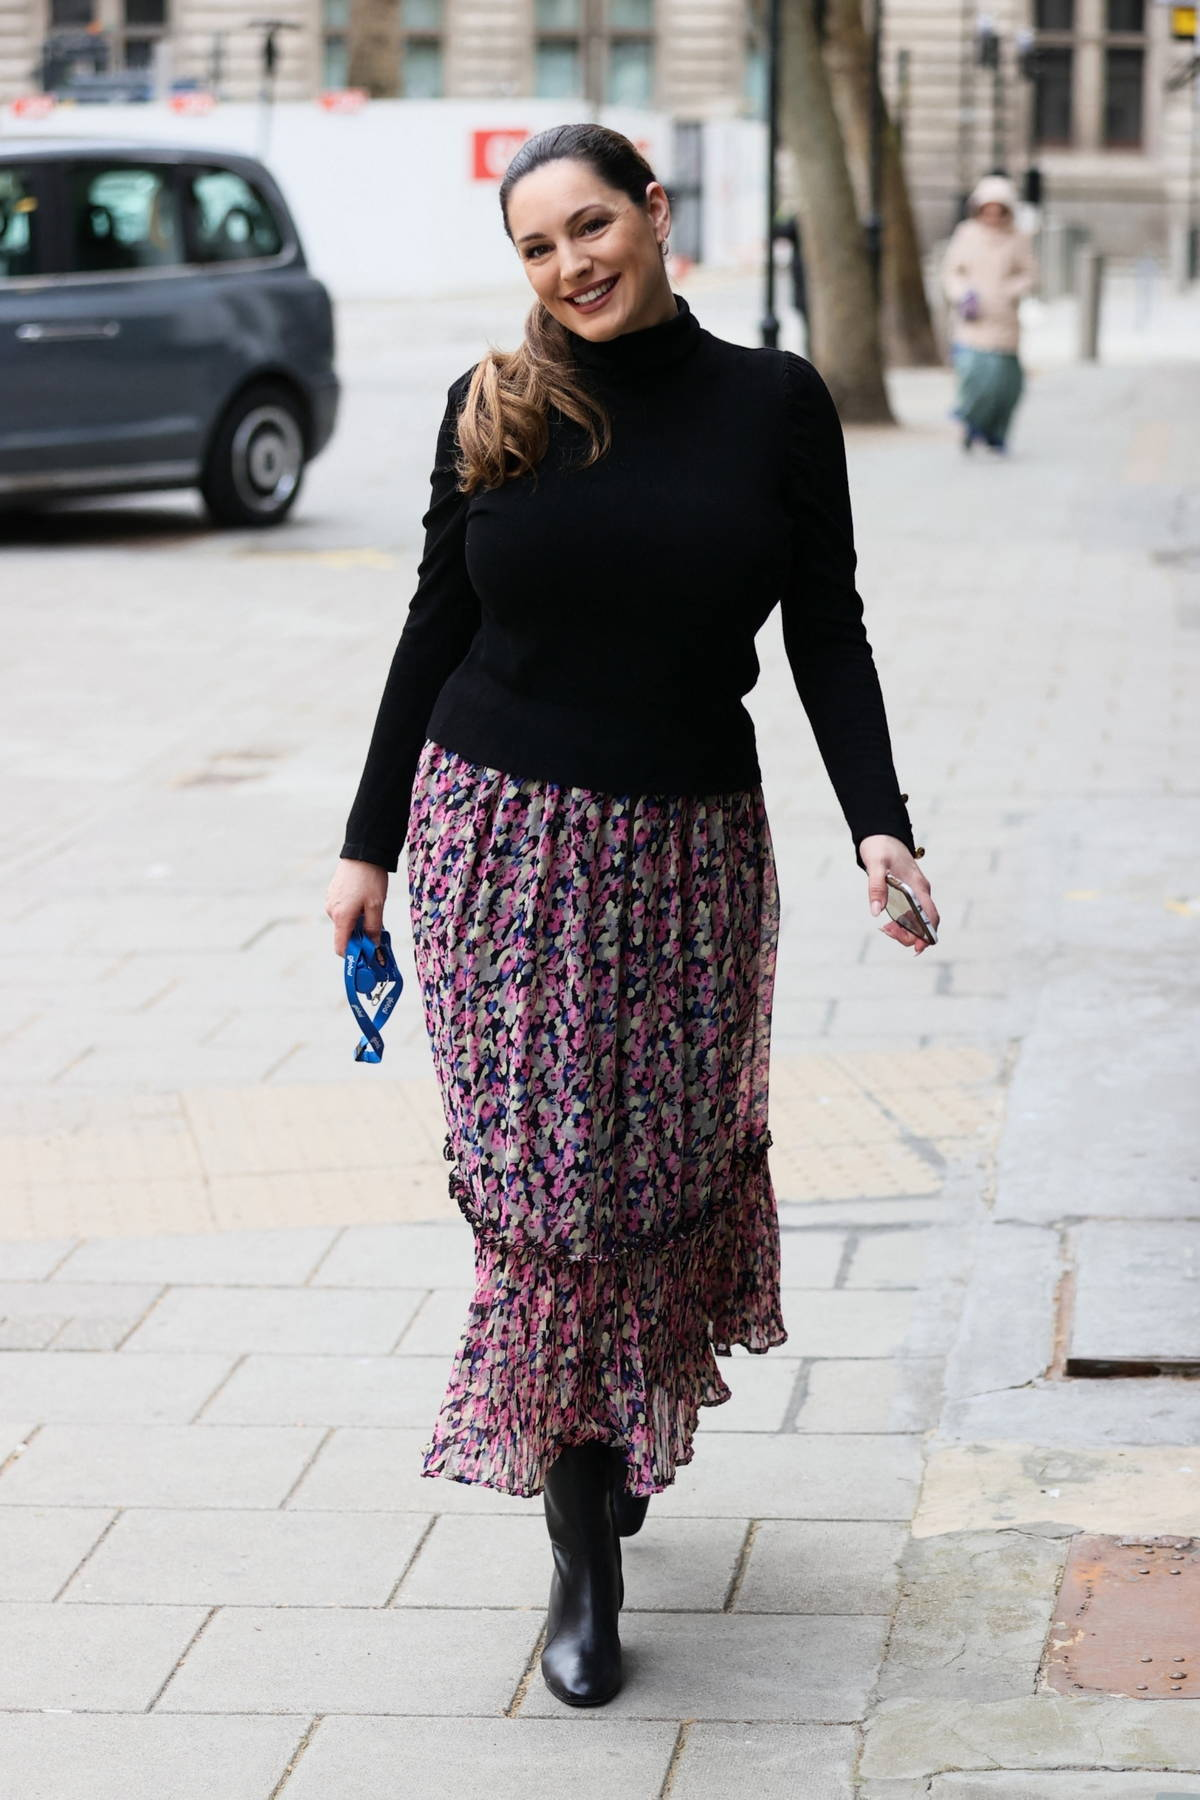 Kelly Brook wears a floral skirt and black jumper as she arrives for her show at Heart radio in London, UK